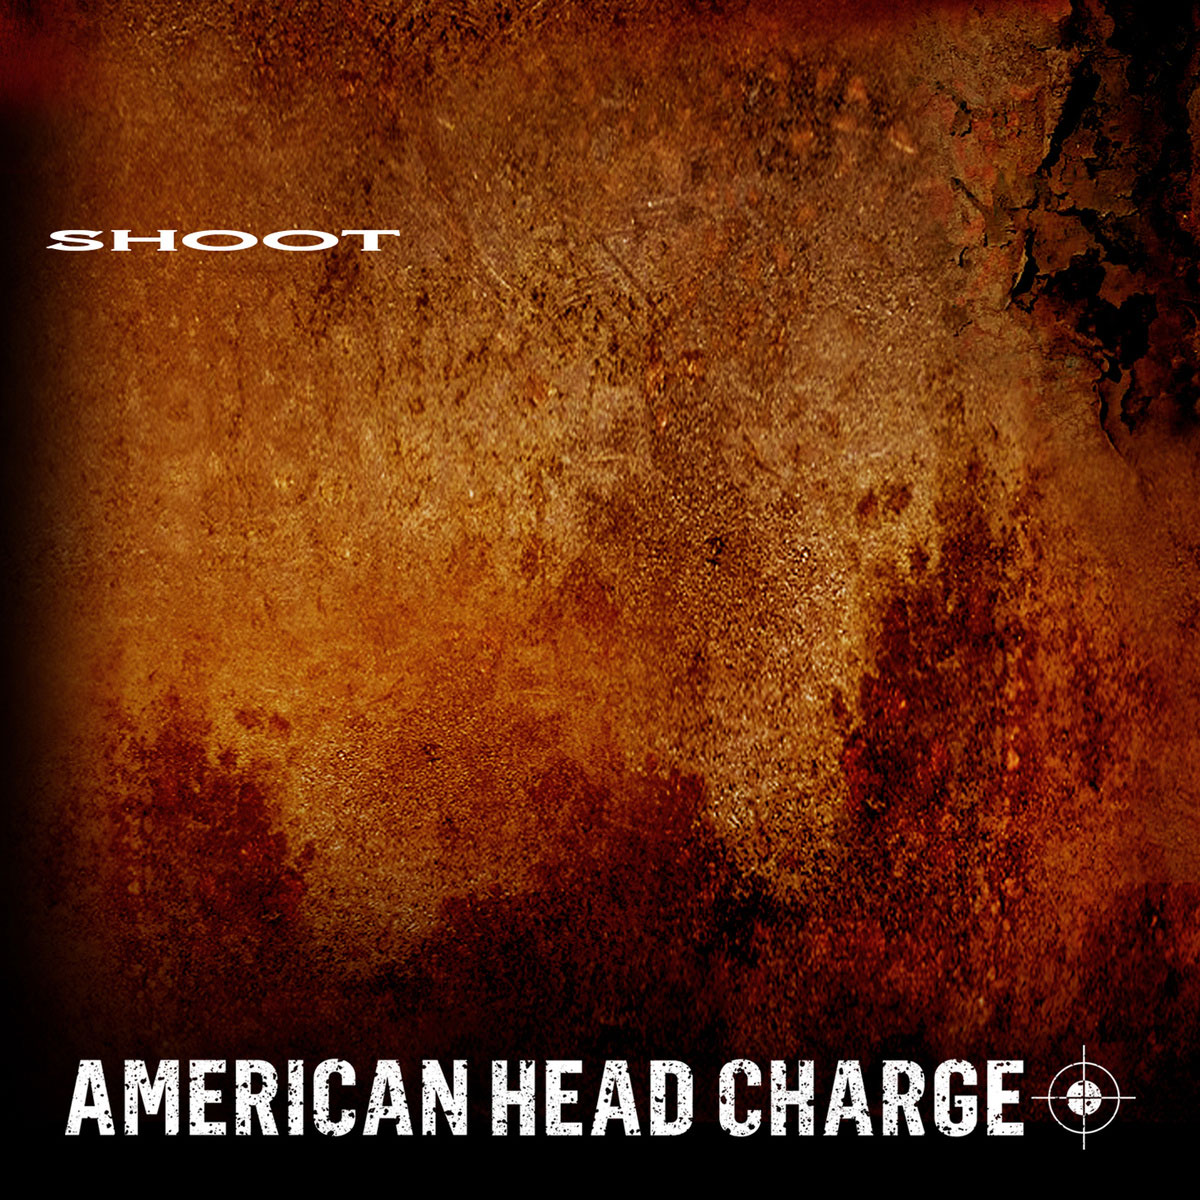 American Head Charge 'Shoot' (EP)